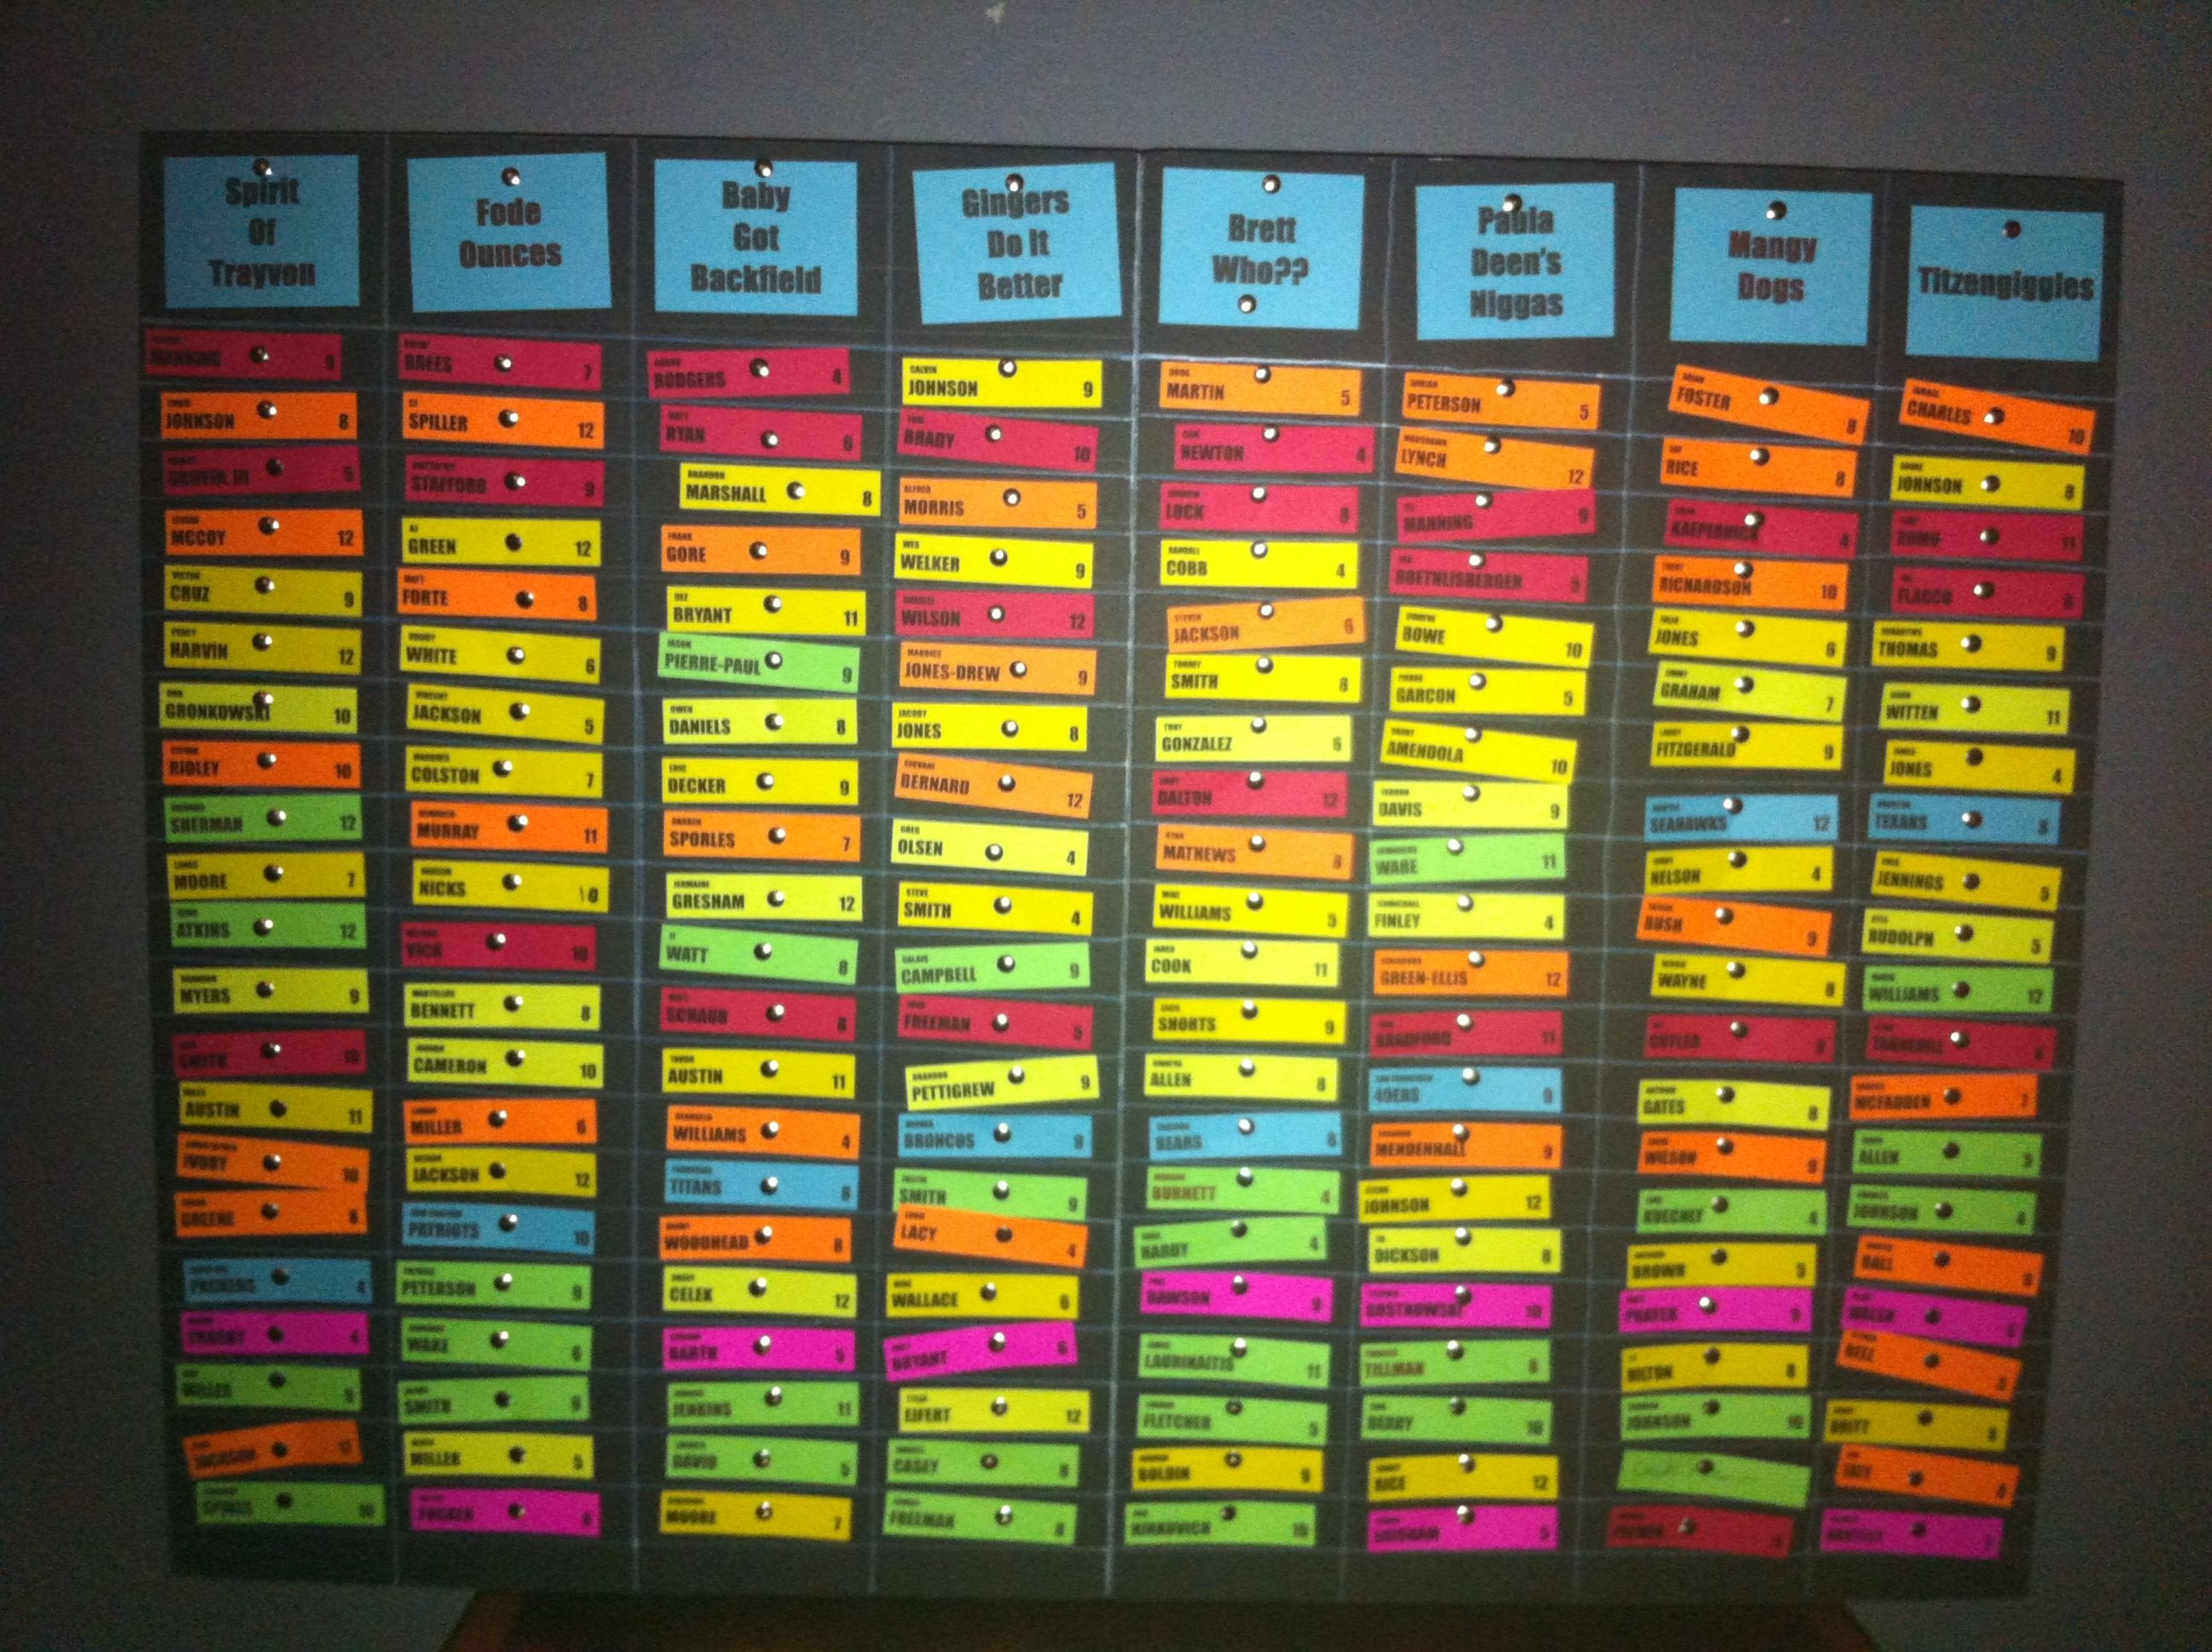 Fantasy Football Live Draft Board. Foam Board, Colored Card Stock - Free Fantasy Football Draft Kit Printable